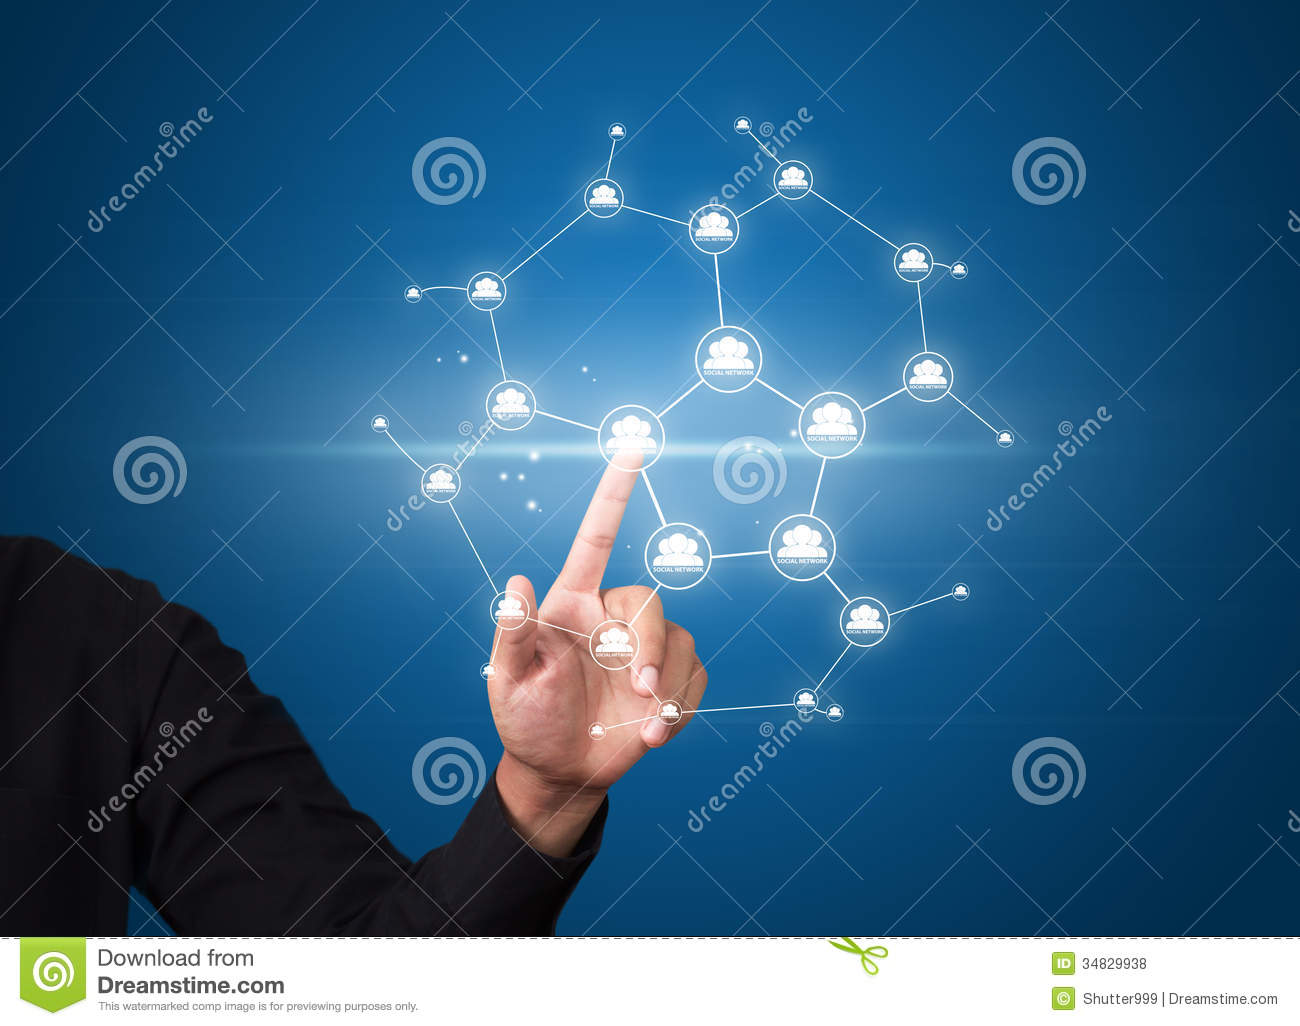 Royalty Free Stock Photos: Business man pressing modern social network ...: www.dreamstime.com/royalty-free-stock-photos-business-man-pressing...